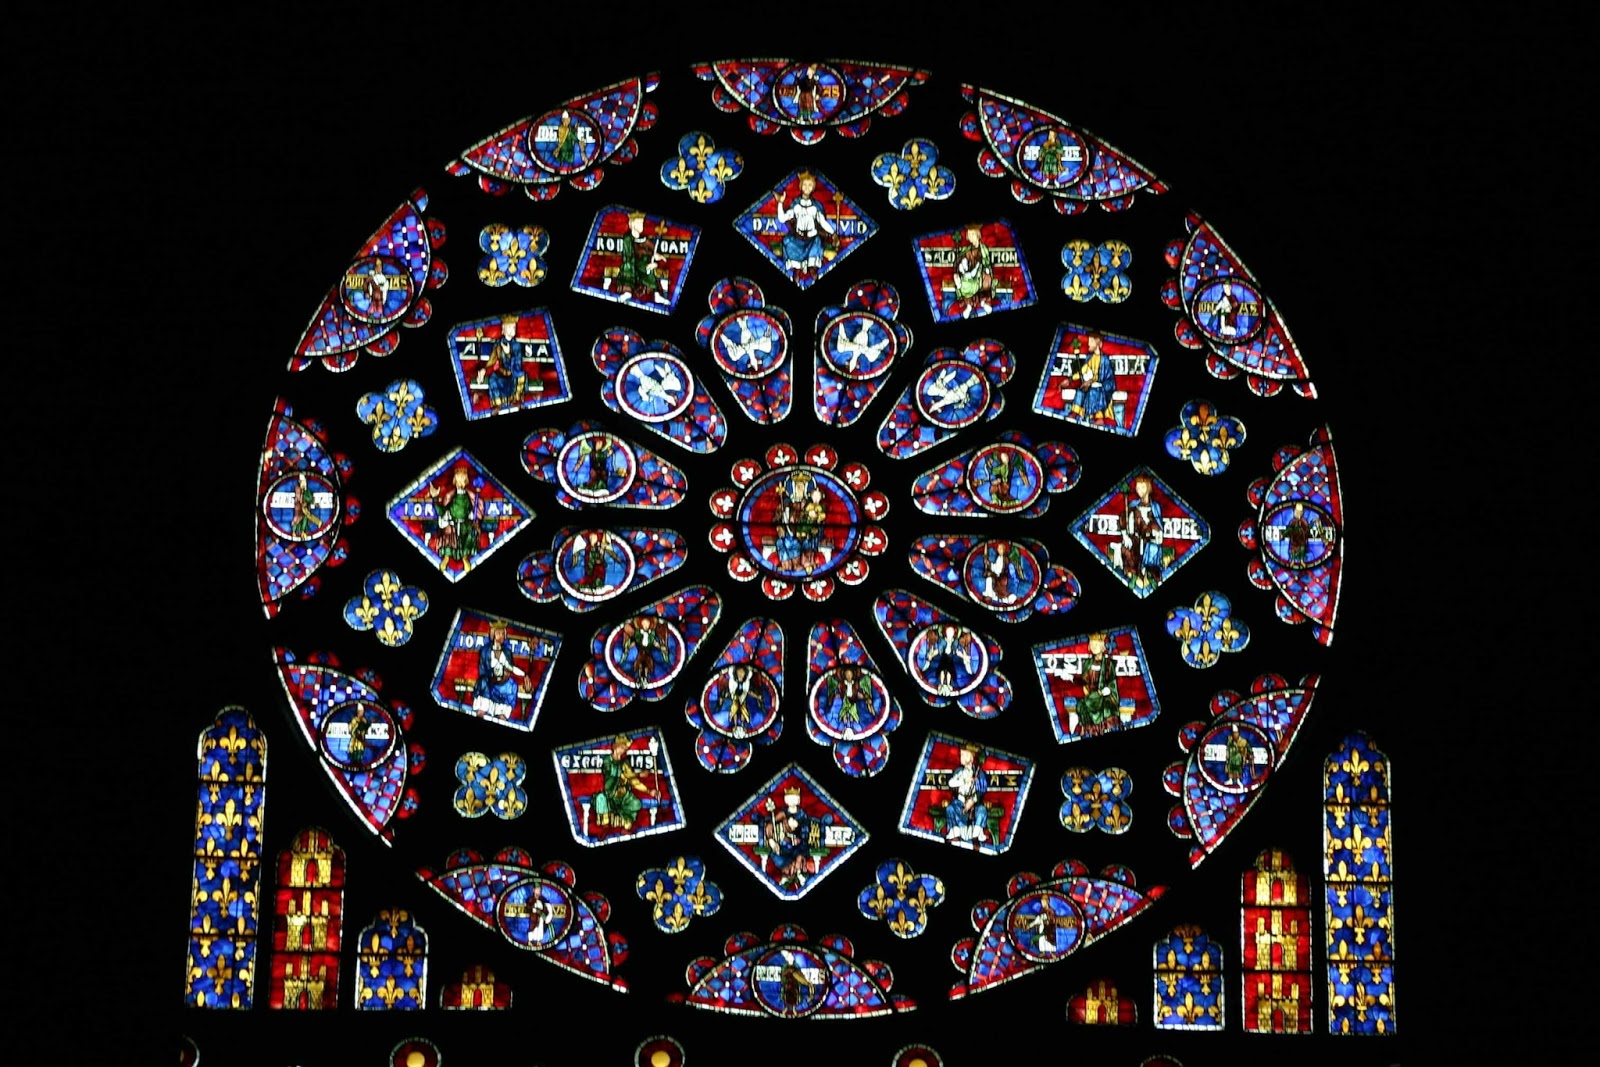 The Image Above Is From A Window At Chartres